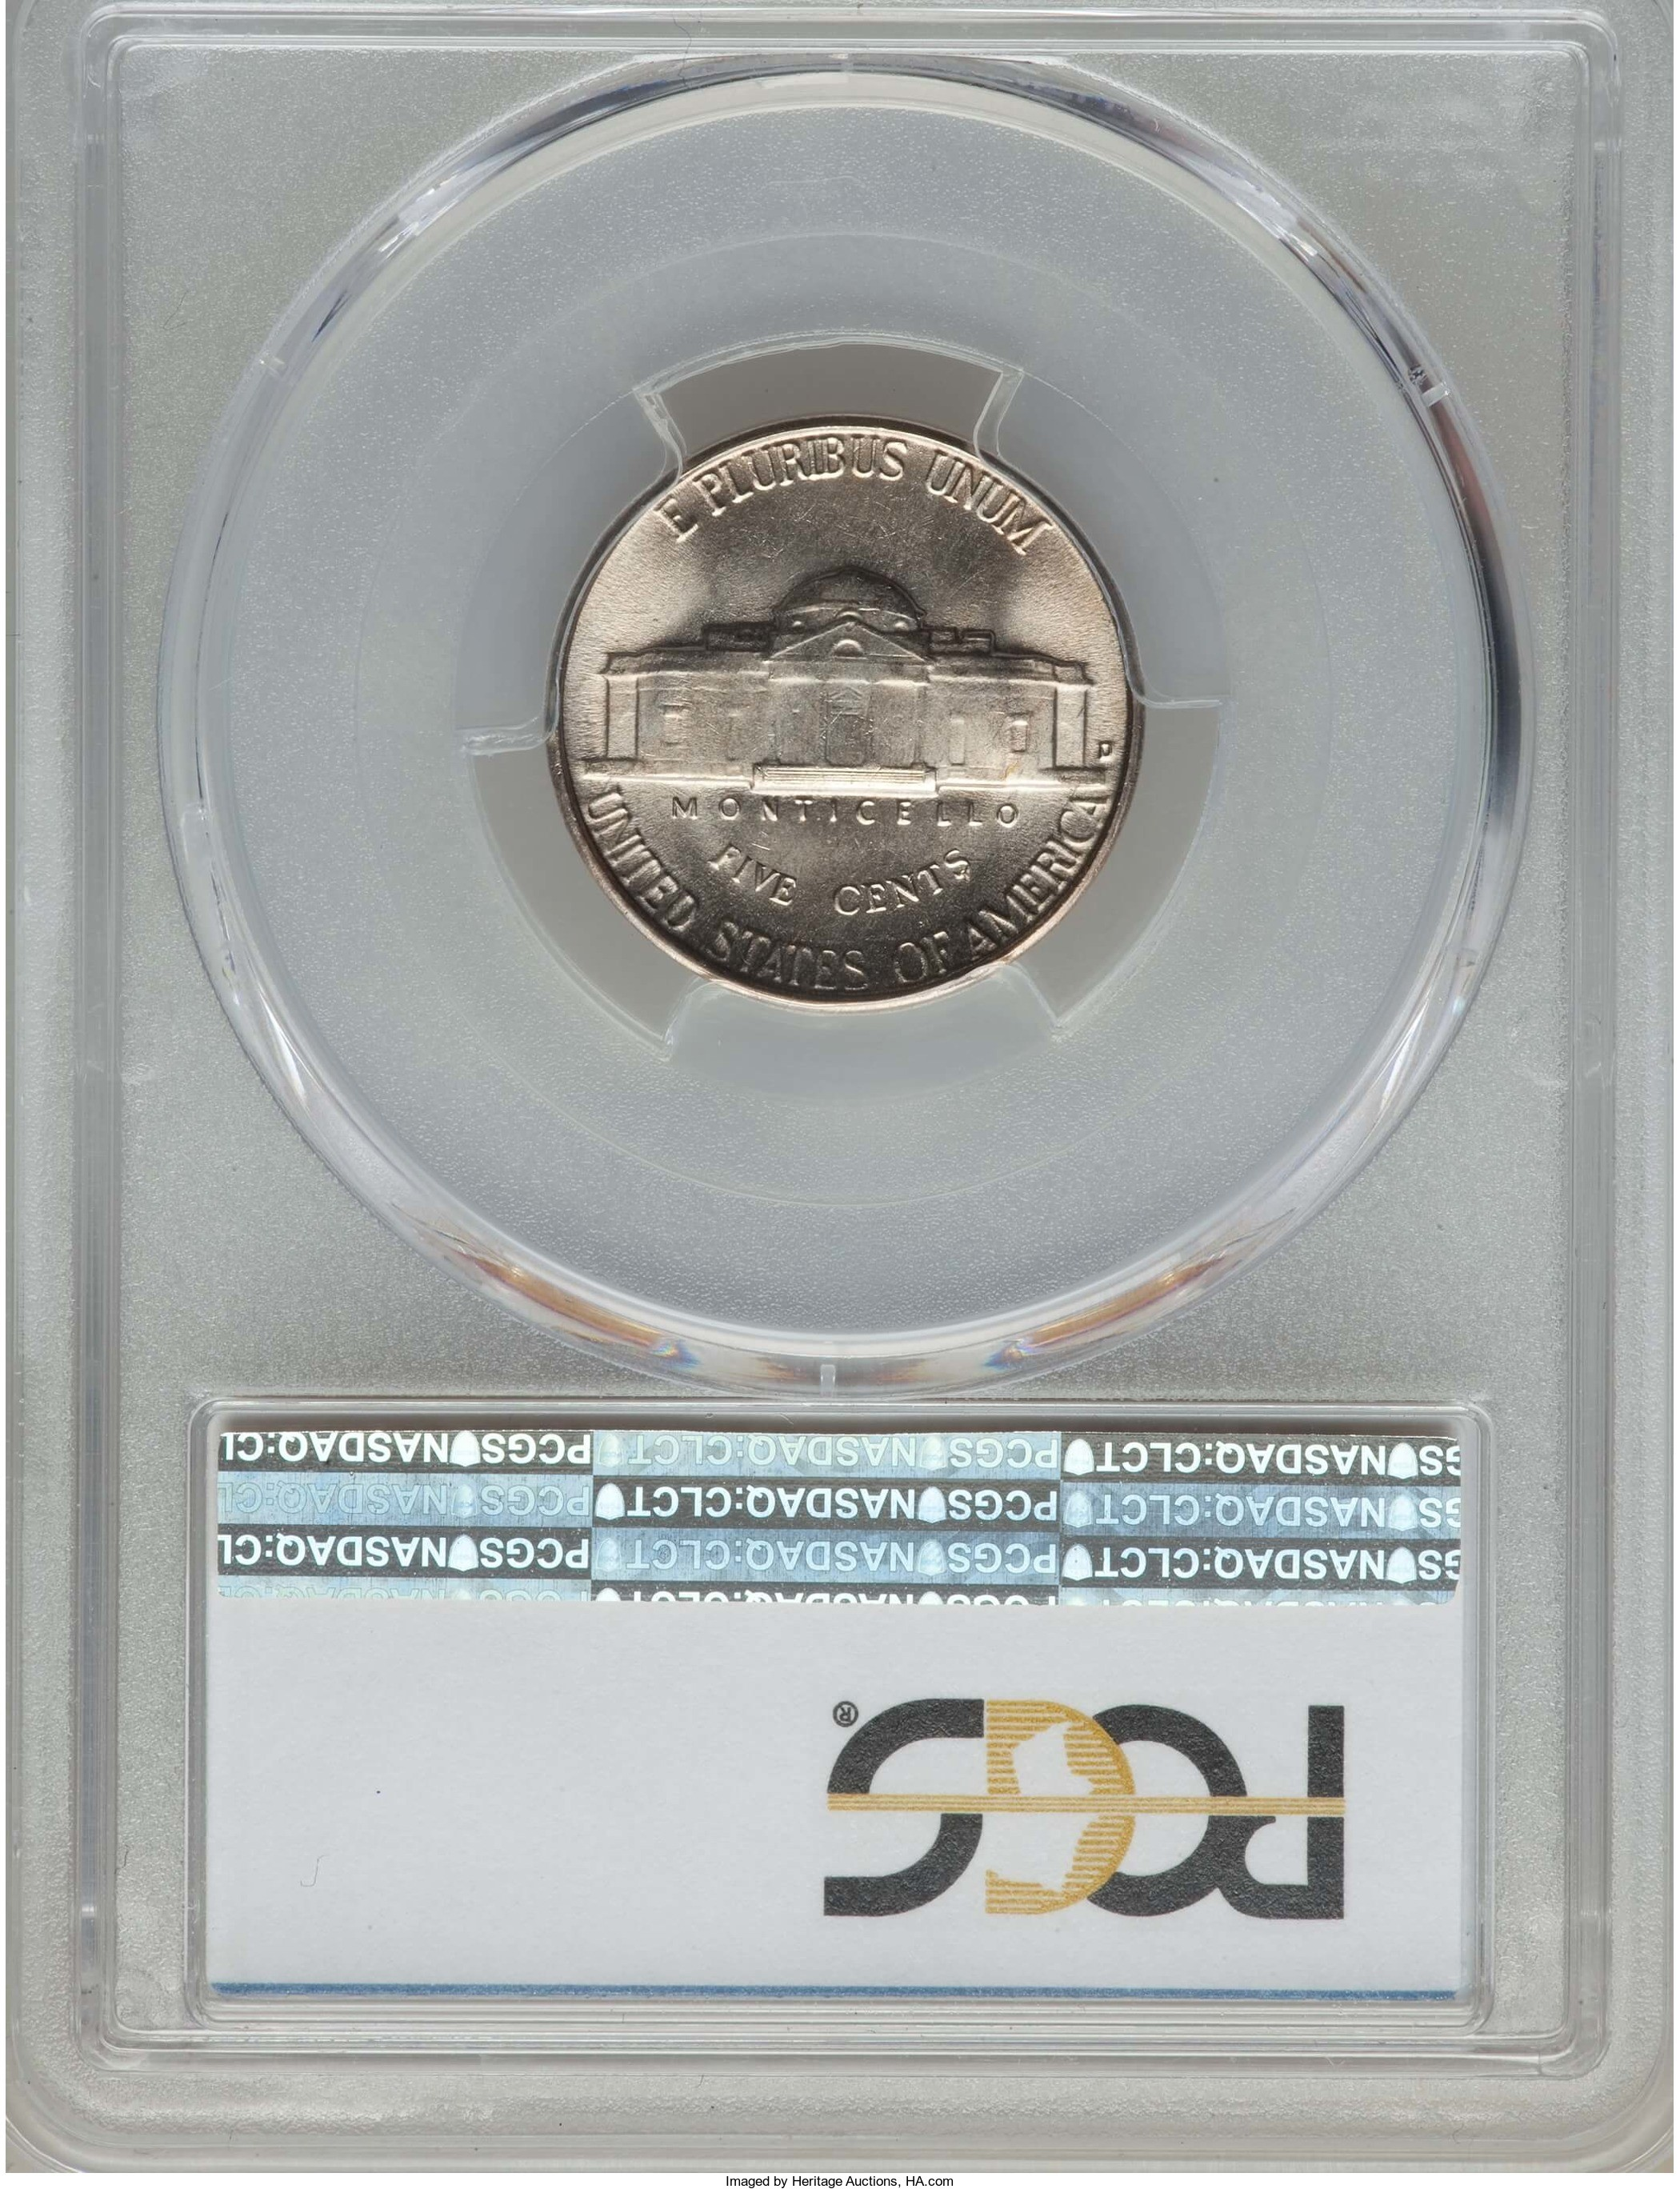 High grade 1950-D 5-cent pieces are genuinely scarce. This PCGS MS-66 coin with full steps on Monticello on the reverse sold for $104 at a February Heritage auction.